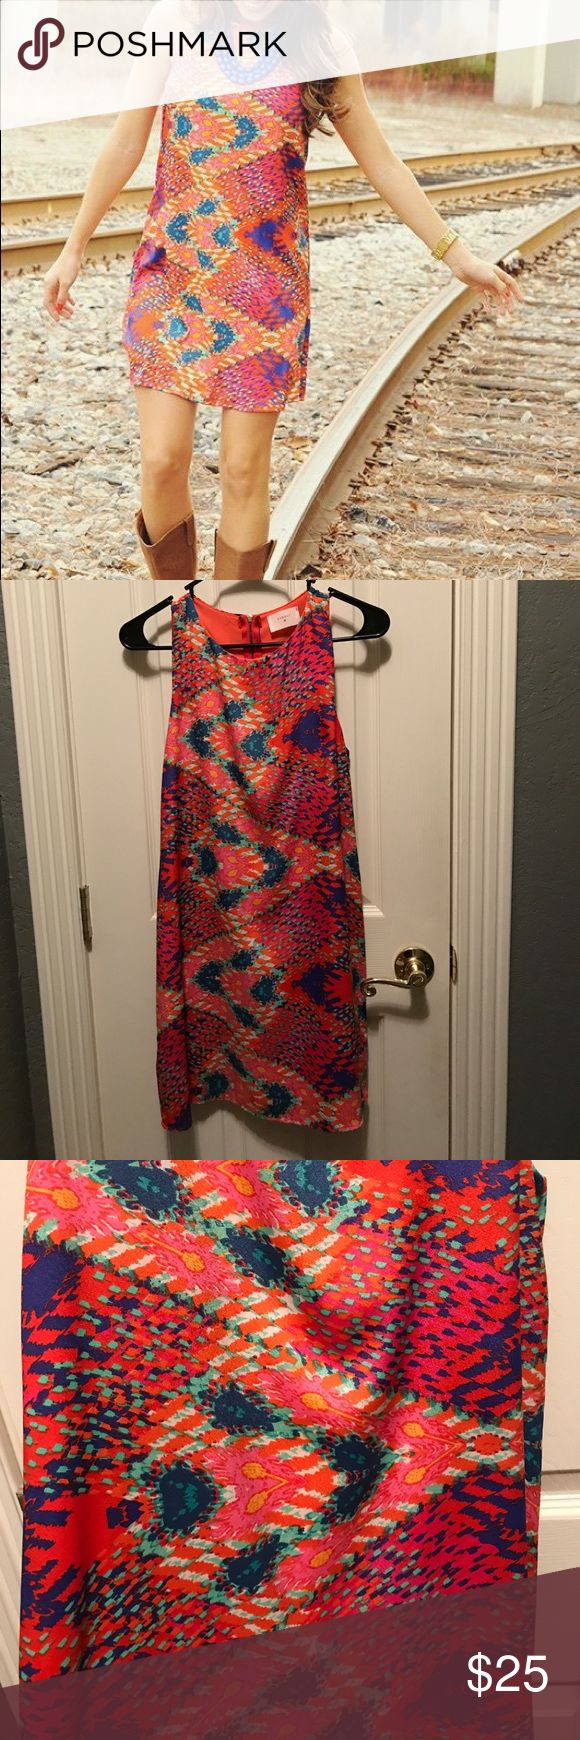 """Everly Dress Y'all! This is so cute! Perfect for brunch or a wedding- simply throw it on & add a necklace or earrings & you're all set! Size small & only worn once. Features a unique print in orange, navy, teal, sea foam green, pink and yellow. Model in pic is 5' 3"""" wearing a small! Everly Dresses Mini"""